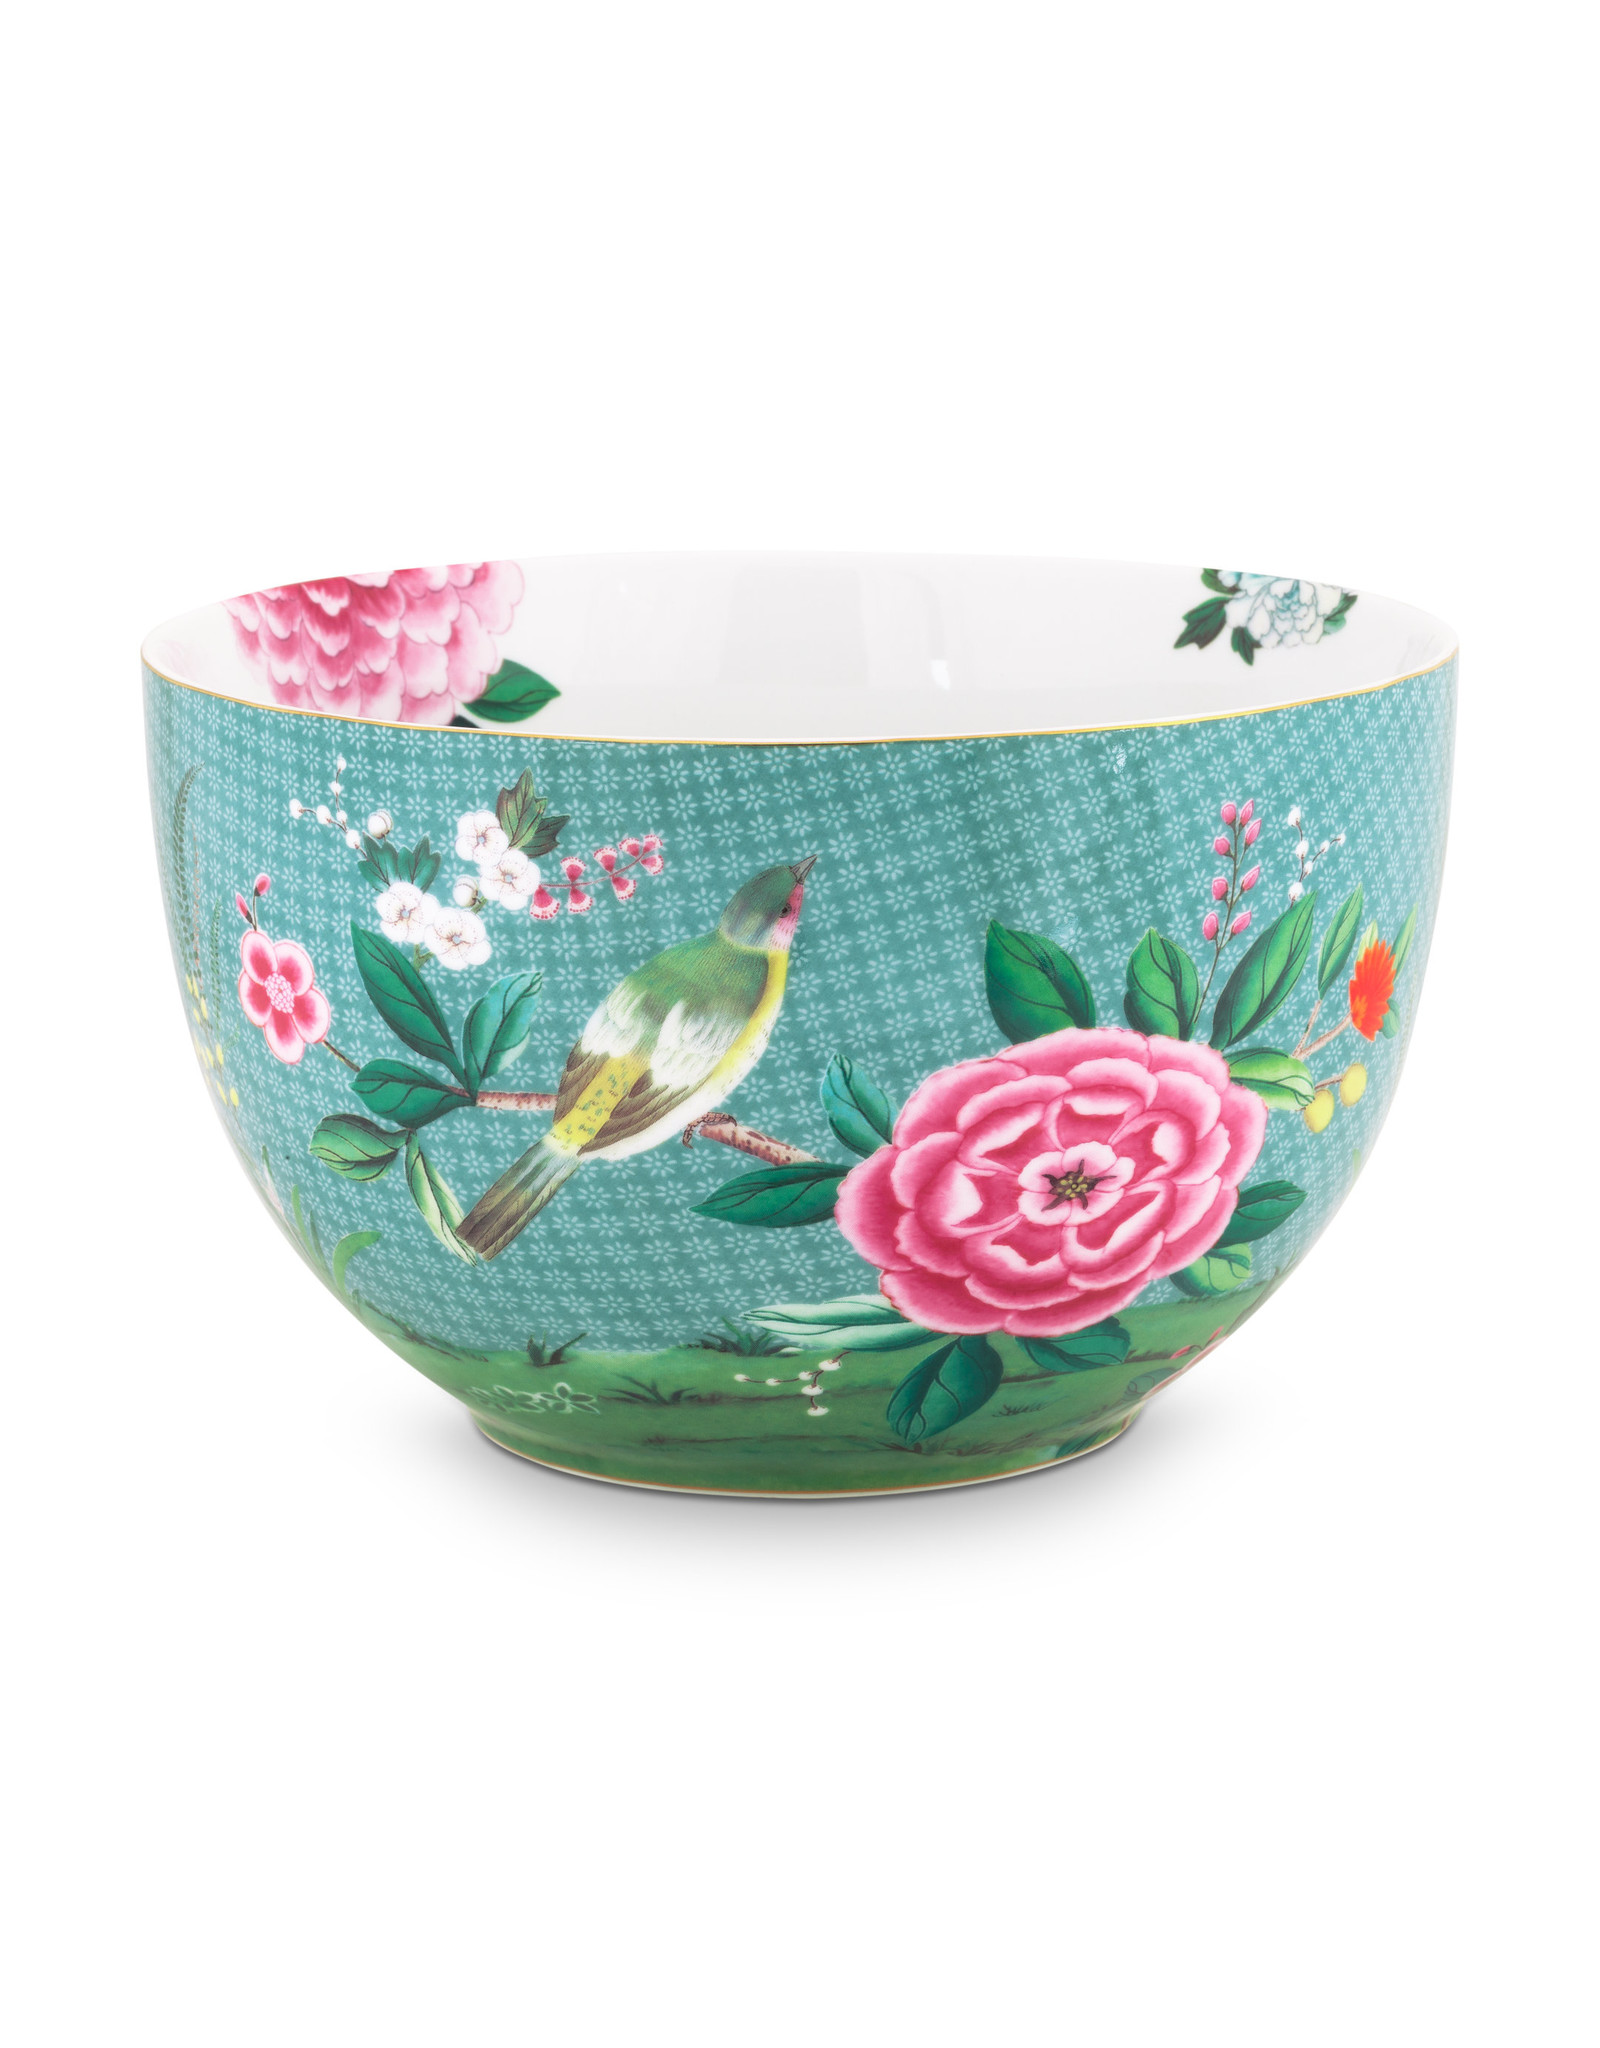 pip studio Bowl Blushing Birds Blue 23cm